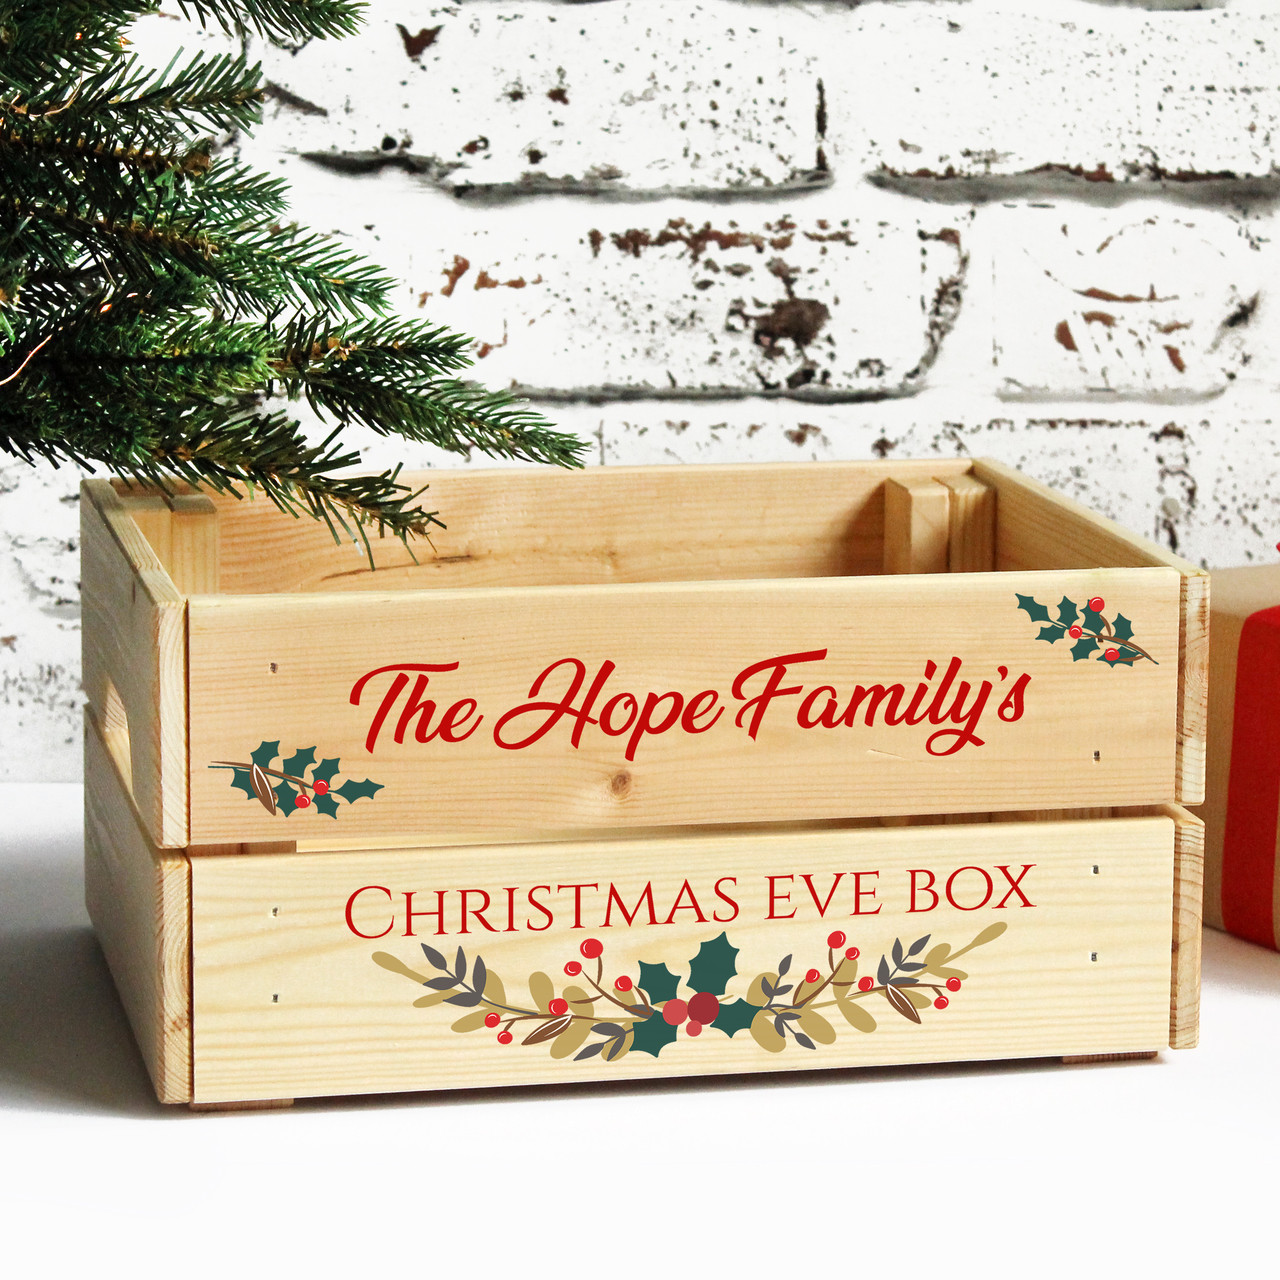 Christmas Eve Crate.Personalised Family Christmas Eve Box Wooden Xmas Crate Wreath Design